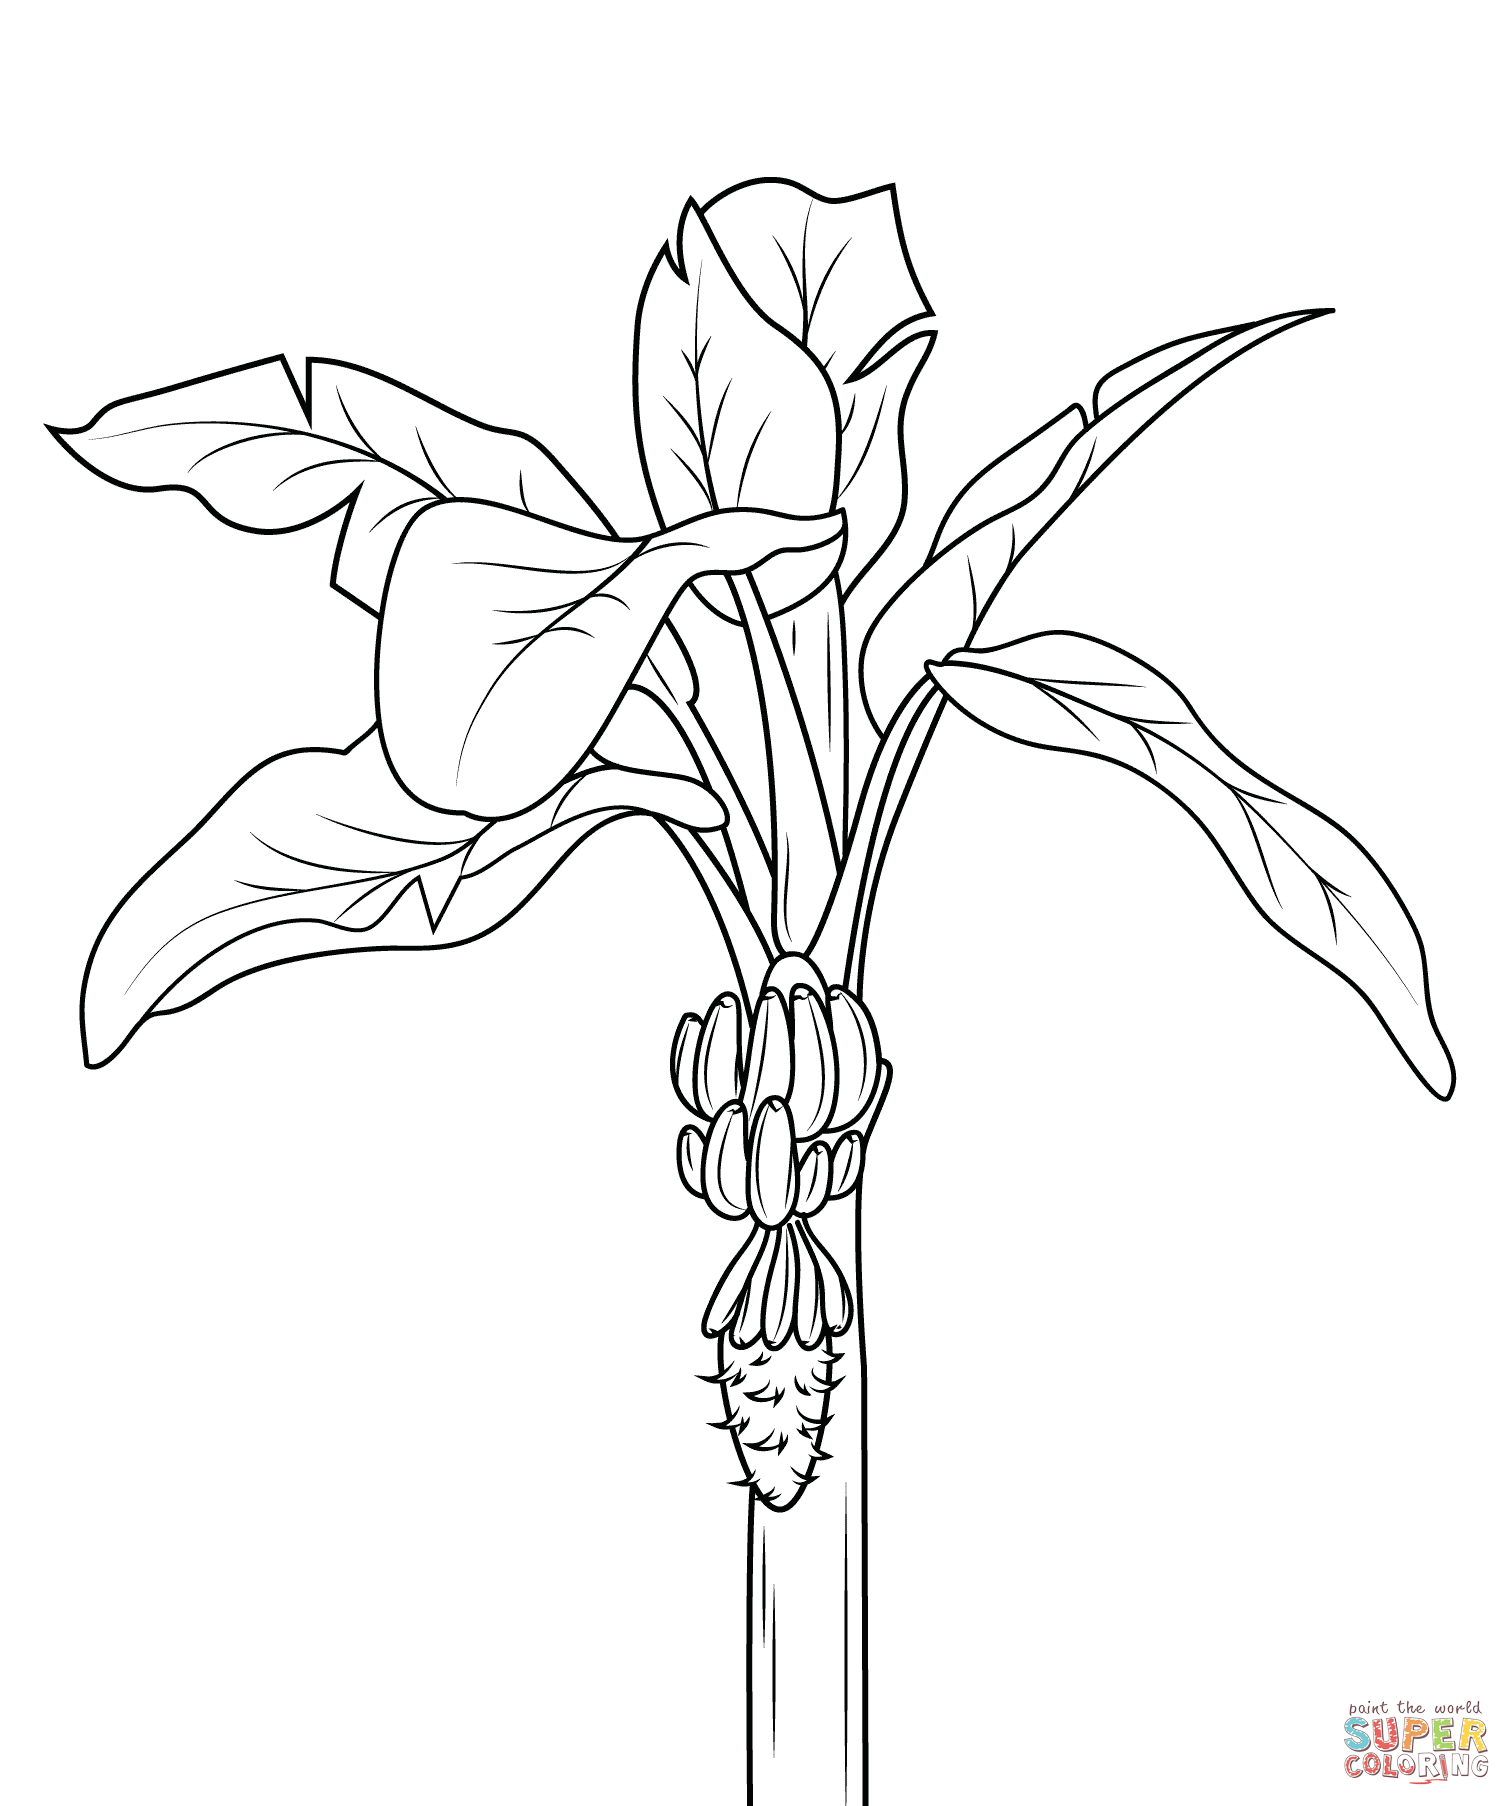 banana tree coloring pages for kids bananas coloring pages free